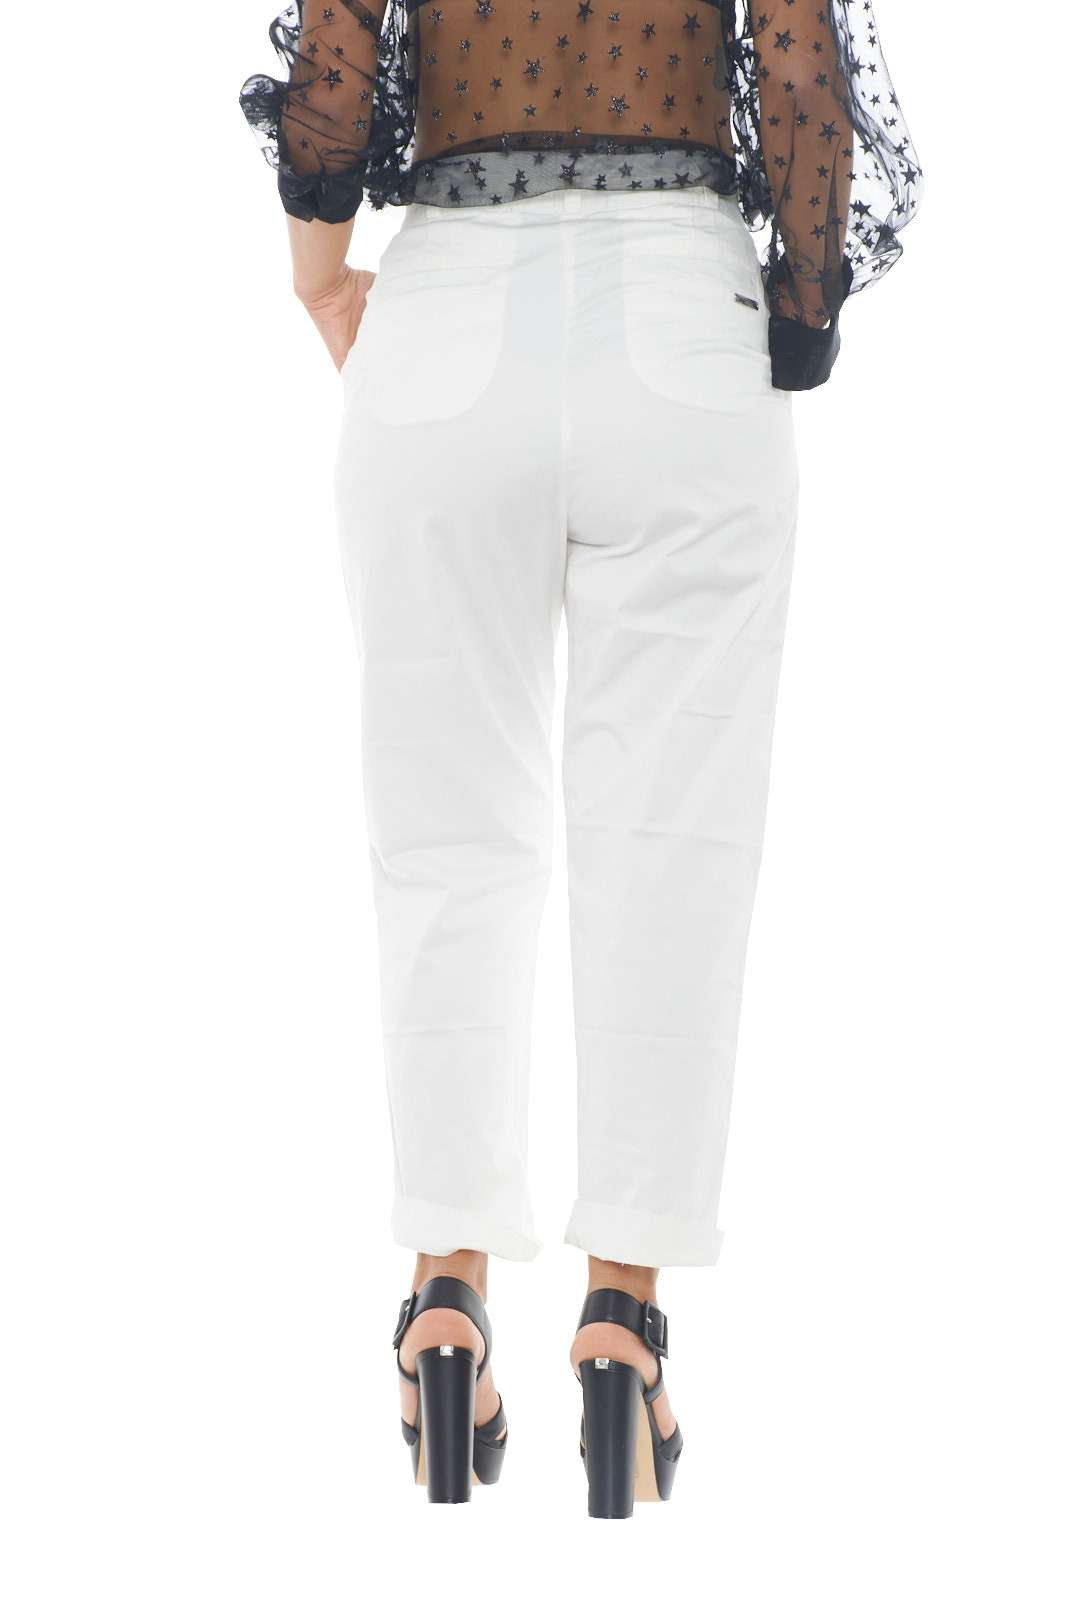 /media/catalog/product/a/i/PE-outlet_parmax-pantaloni-donna-Woolrich-wwpan1241-C.jpg